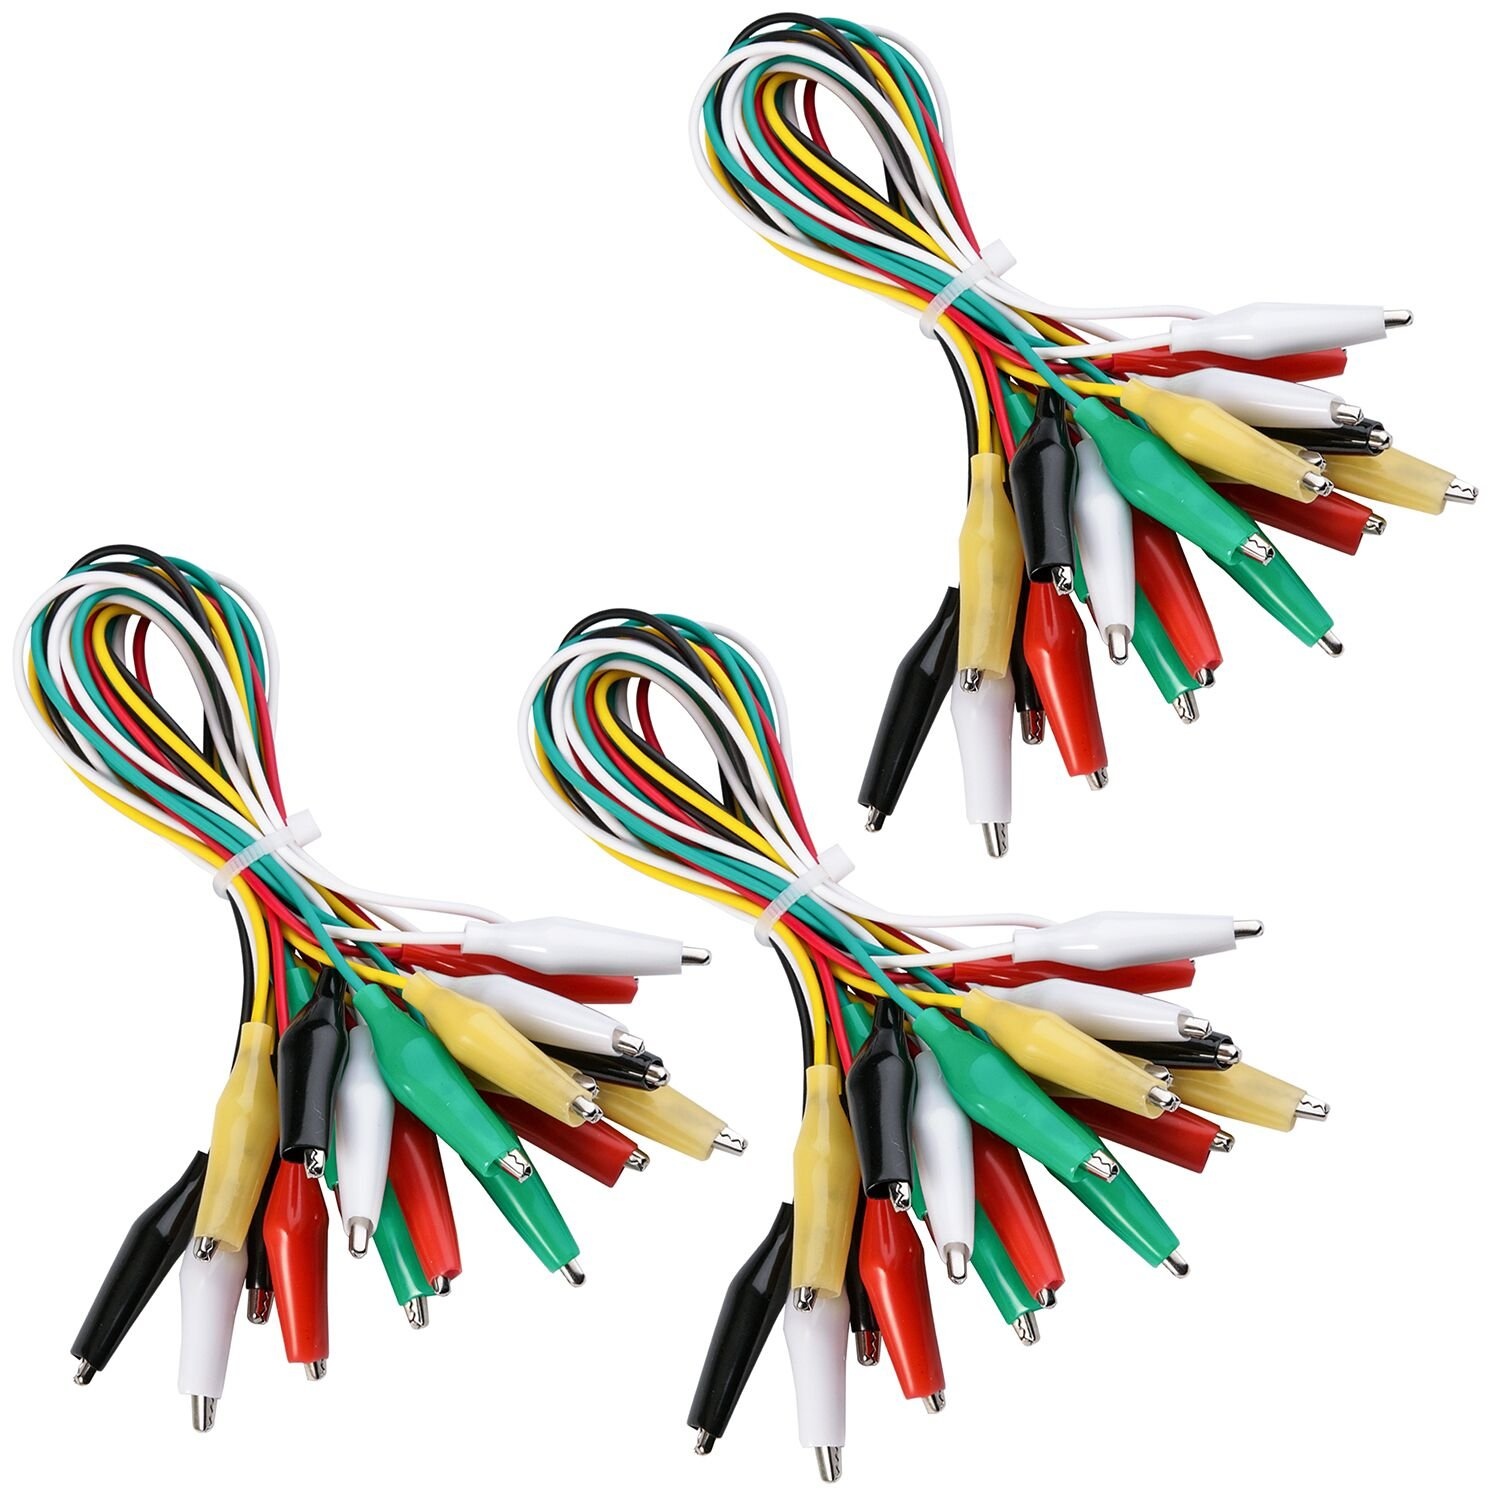 Heavy Duty Commercial Vehicles Parts 2013 Dodge 3500 Trailer 7 Pin Wiring Alligator Clip Test Leads Elegoo 30 Pcs Set With Clips